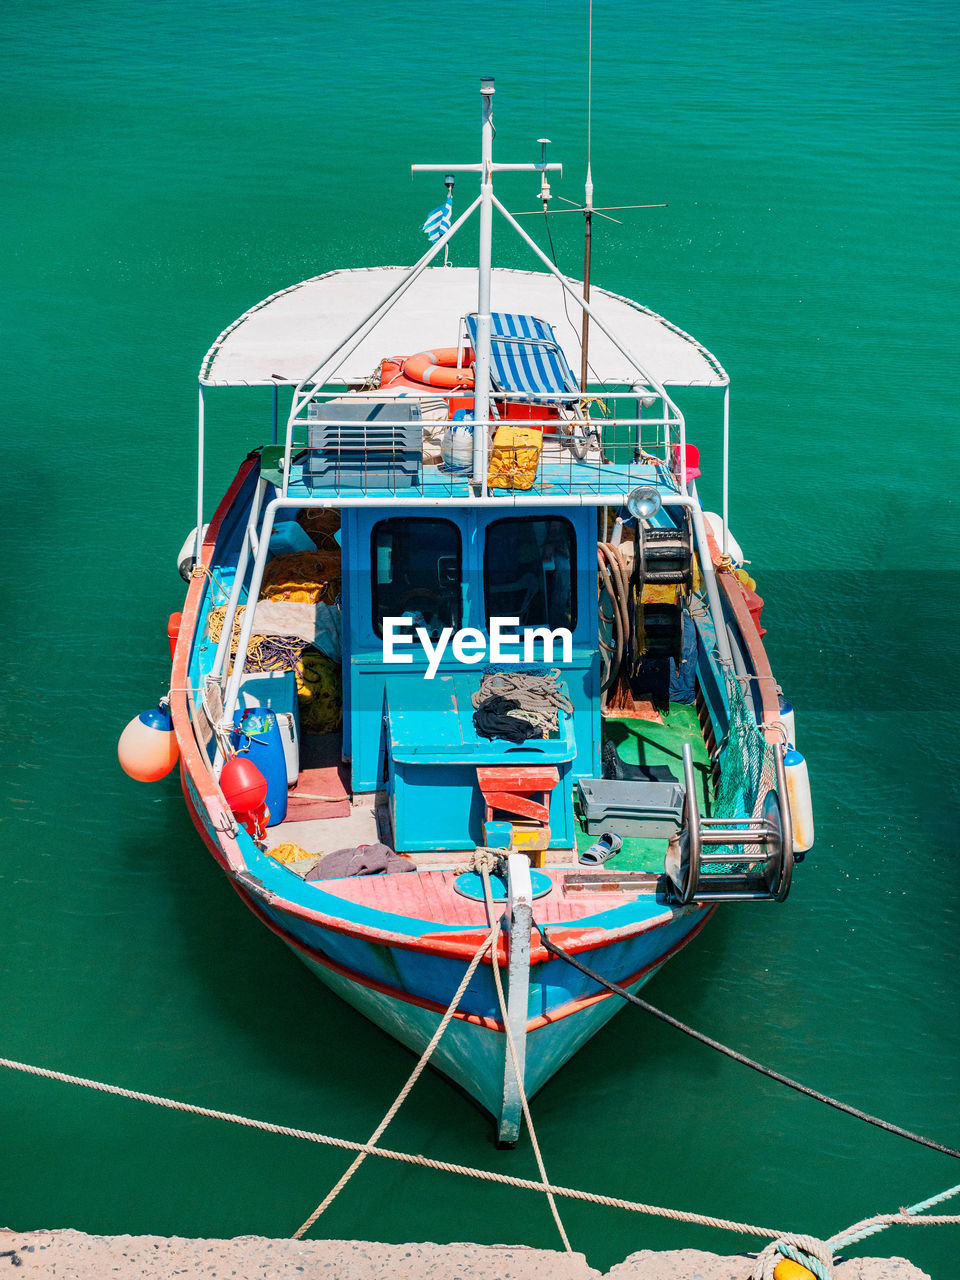 transportation, mode of transportation, nautical vessel, water, sea, moored, nature, high angle view, no people, travel, outdoors, day, mast, rope, ship, journey, motion, turquoise colored